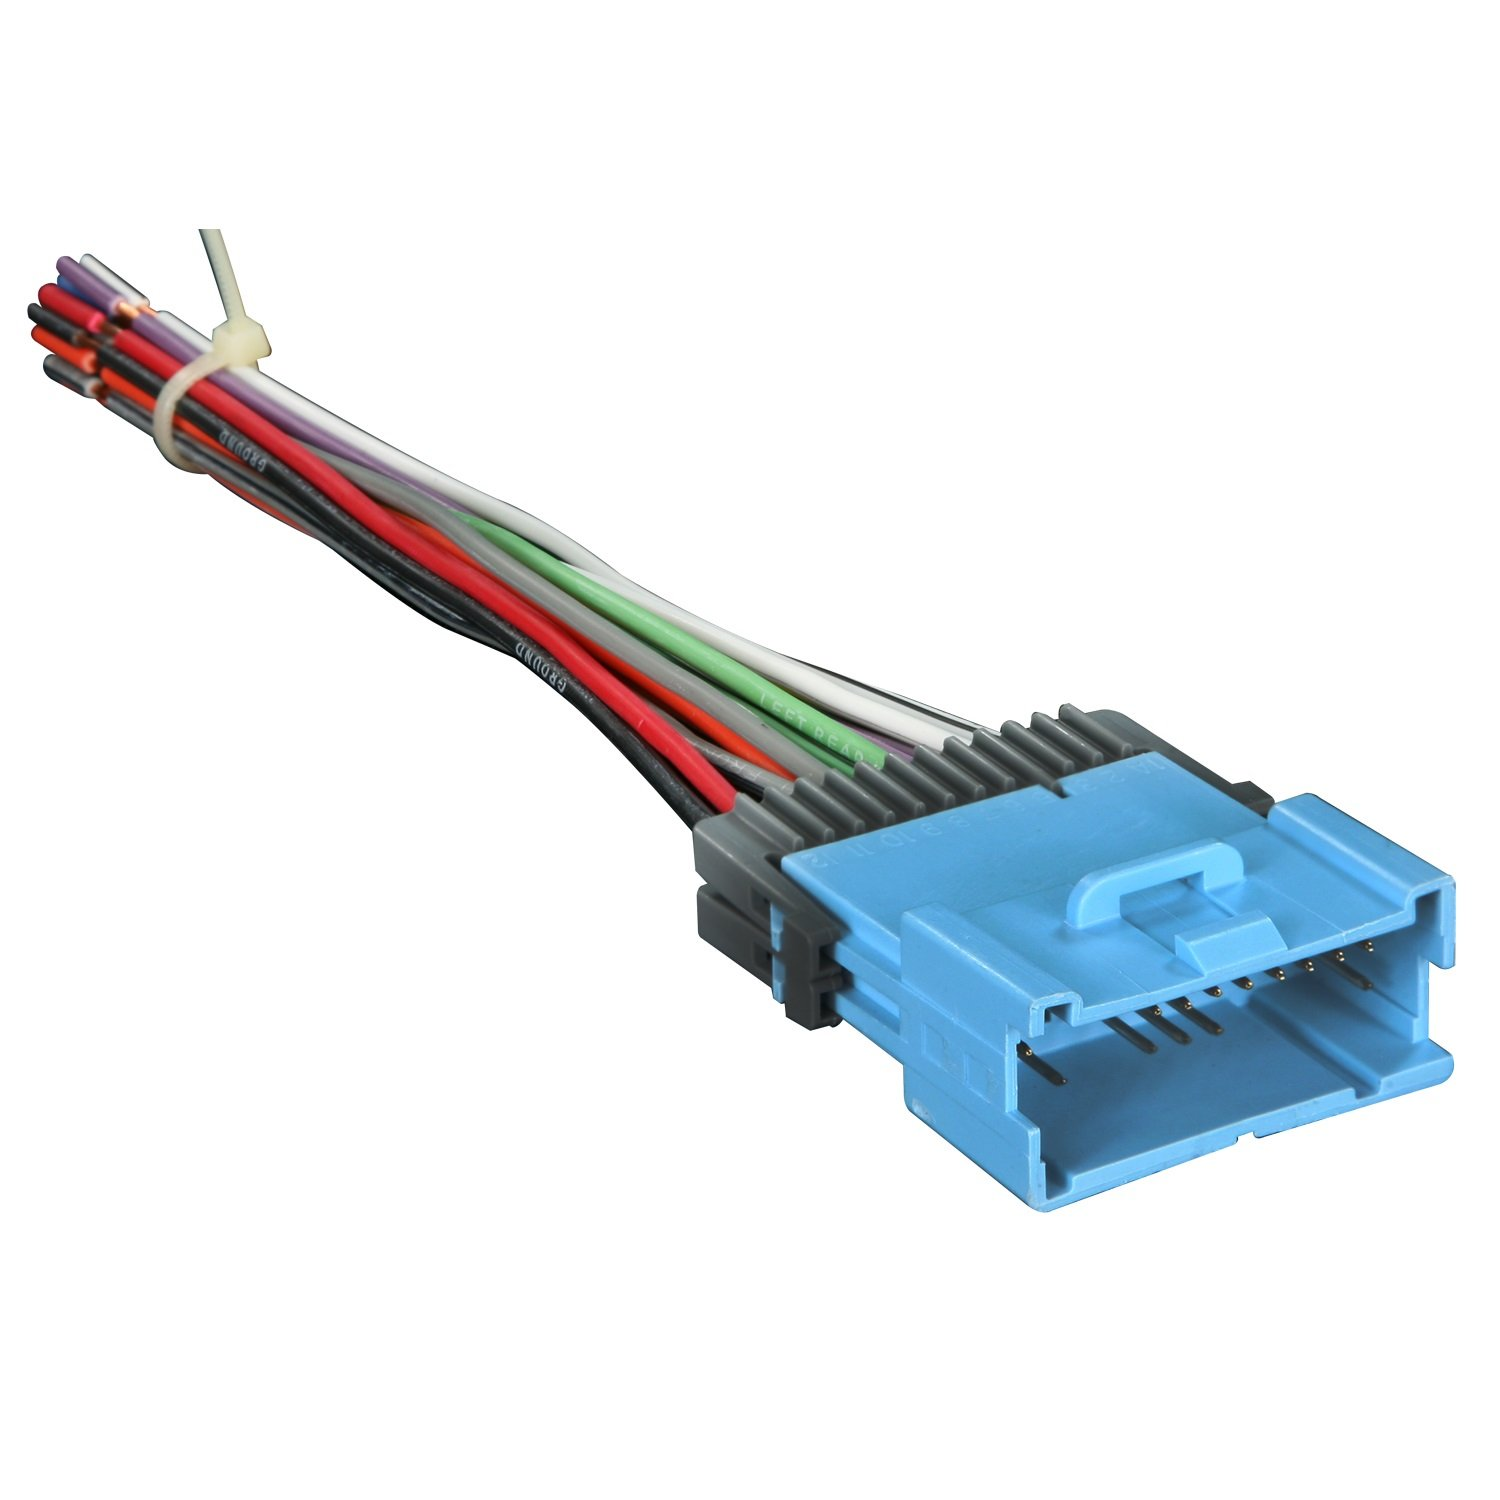 61ruWw 2aJL._SL1500_ amazon com metra 70 2102 radio wiring harness for gm 04 05 car Raspberry Pi 3 Wiring Diagram at eliteediting.co